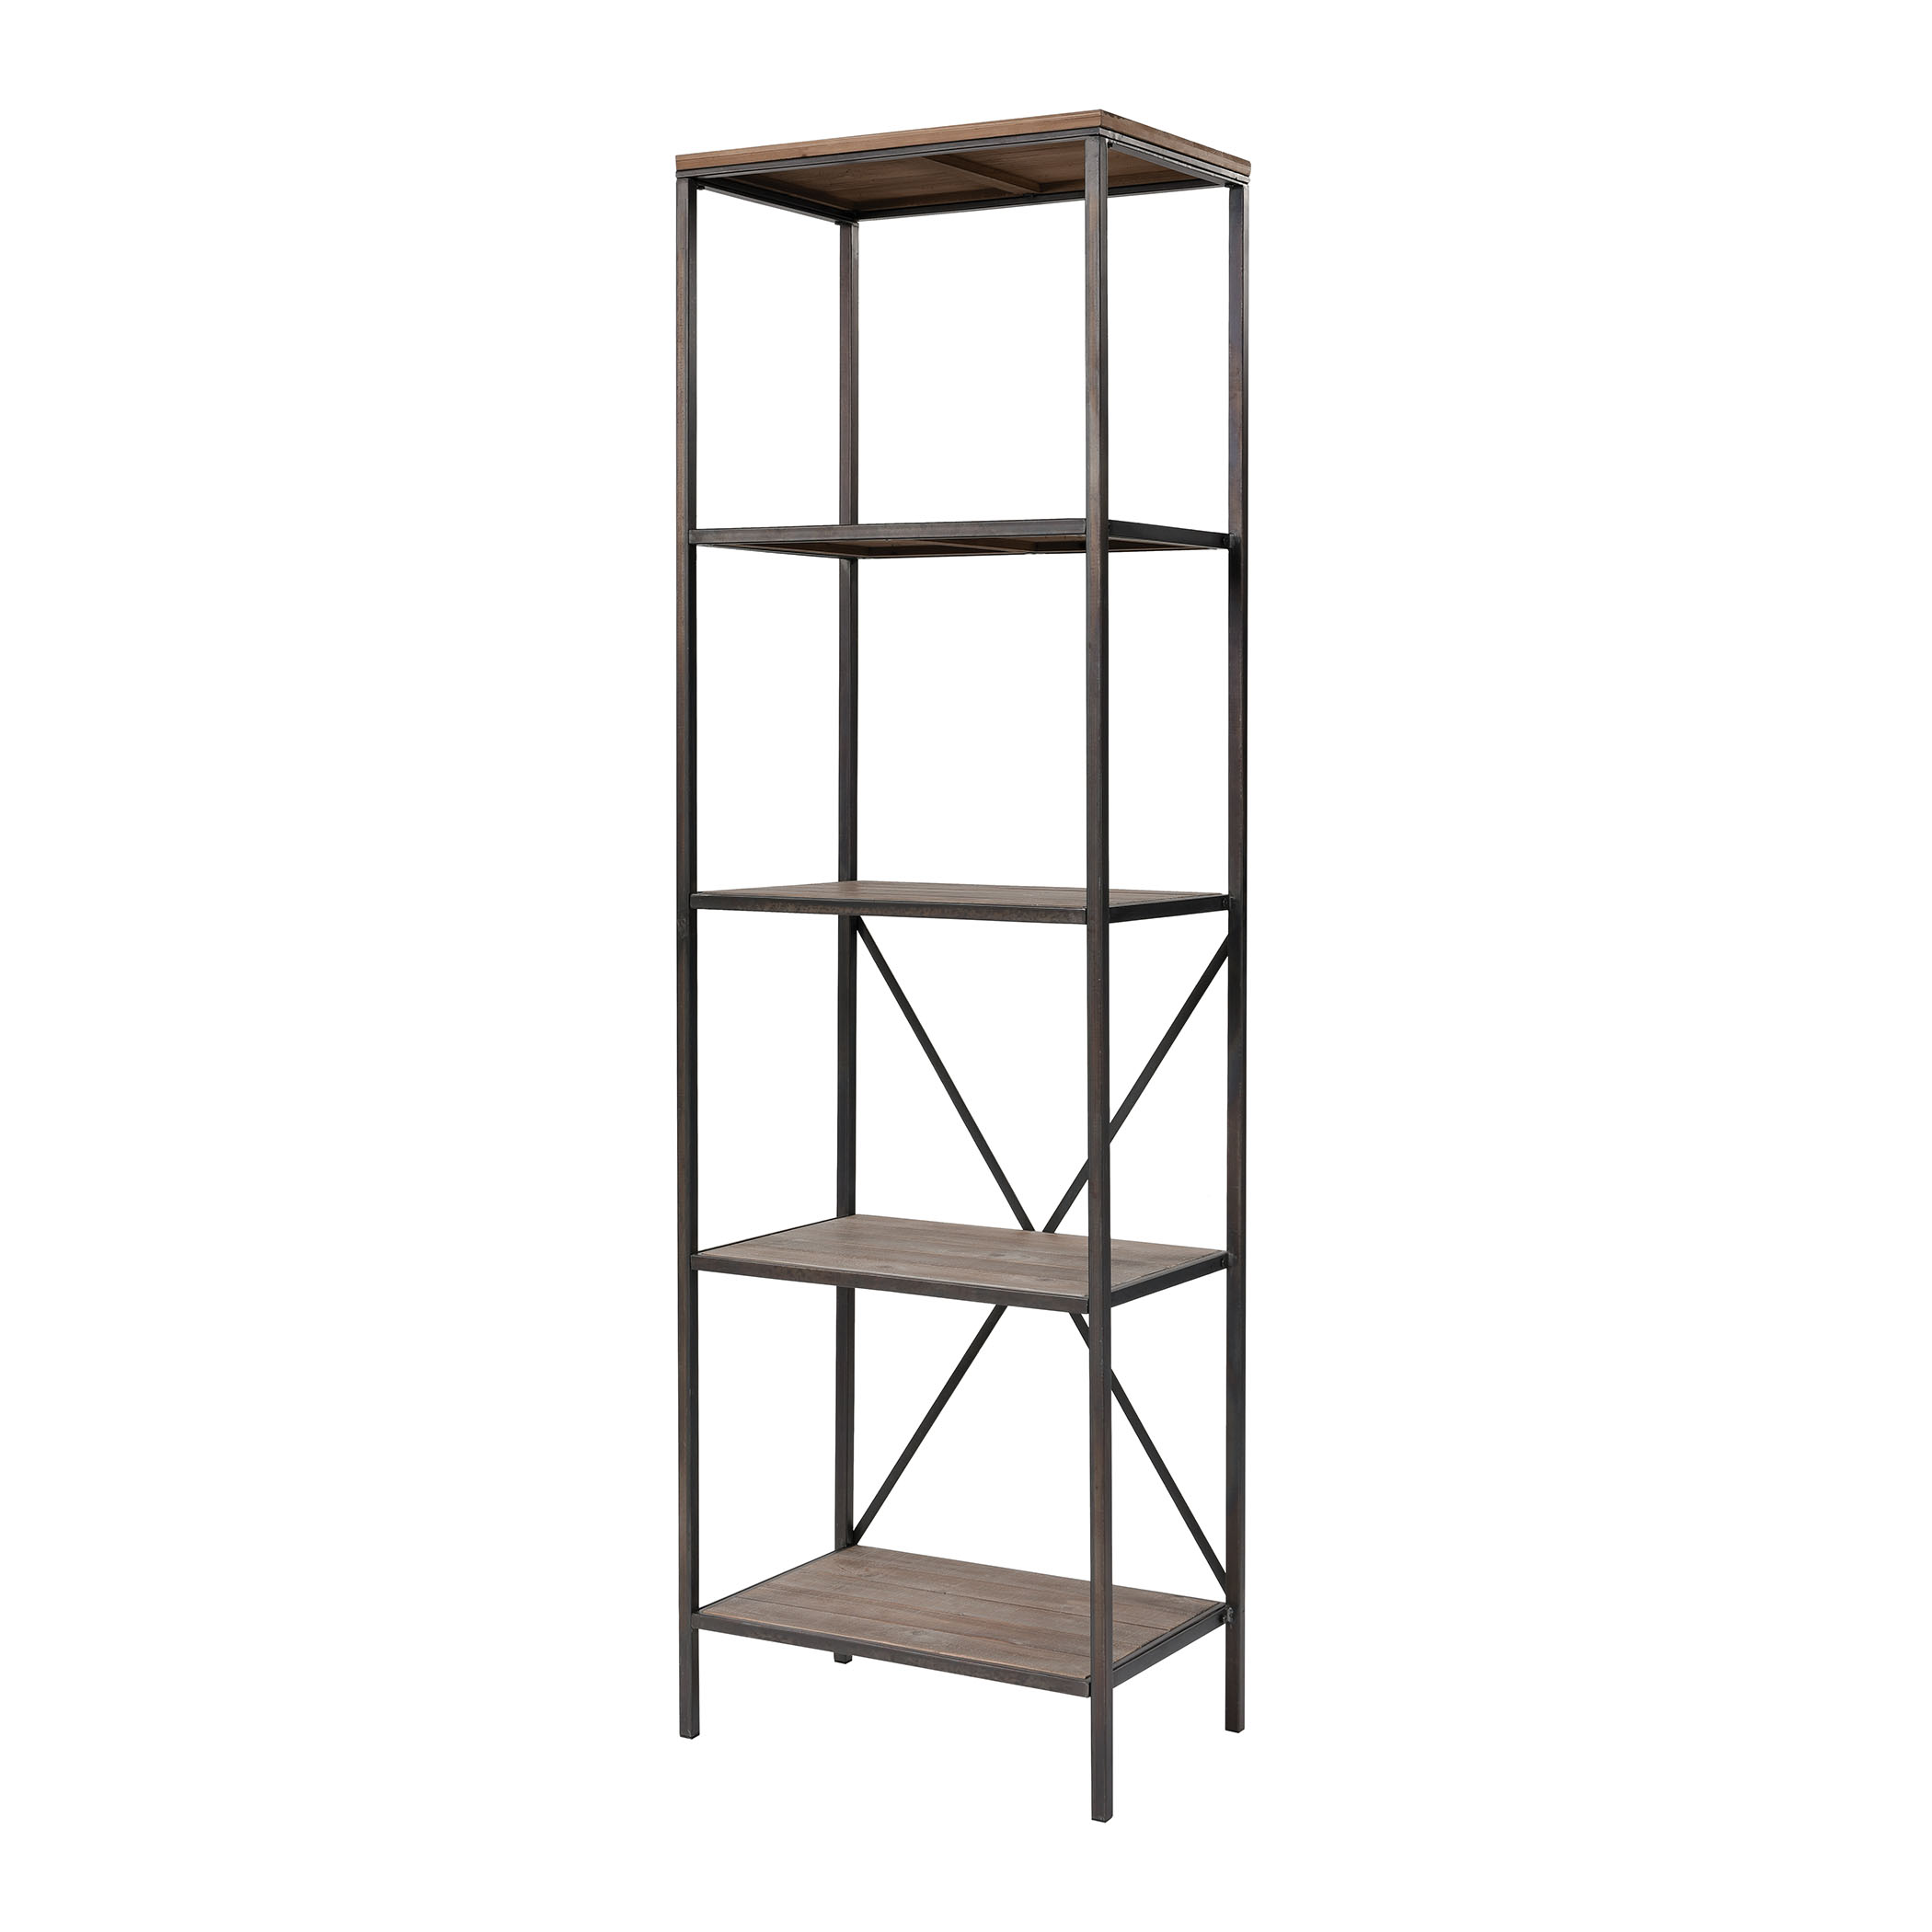 Whitepark Bay Bookshelf in Galvanized Steel and Natural Wood | Elk Home